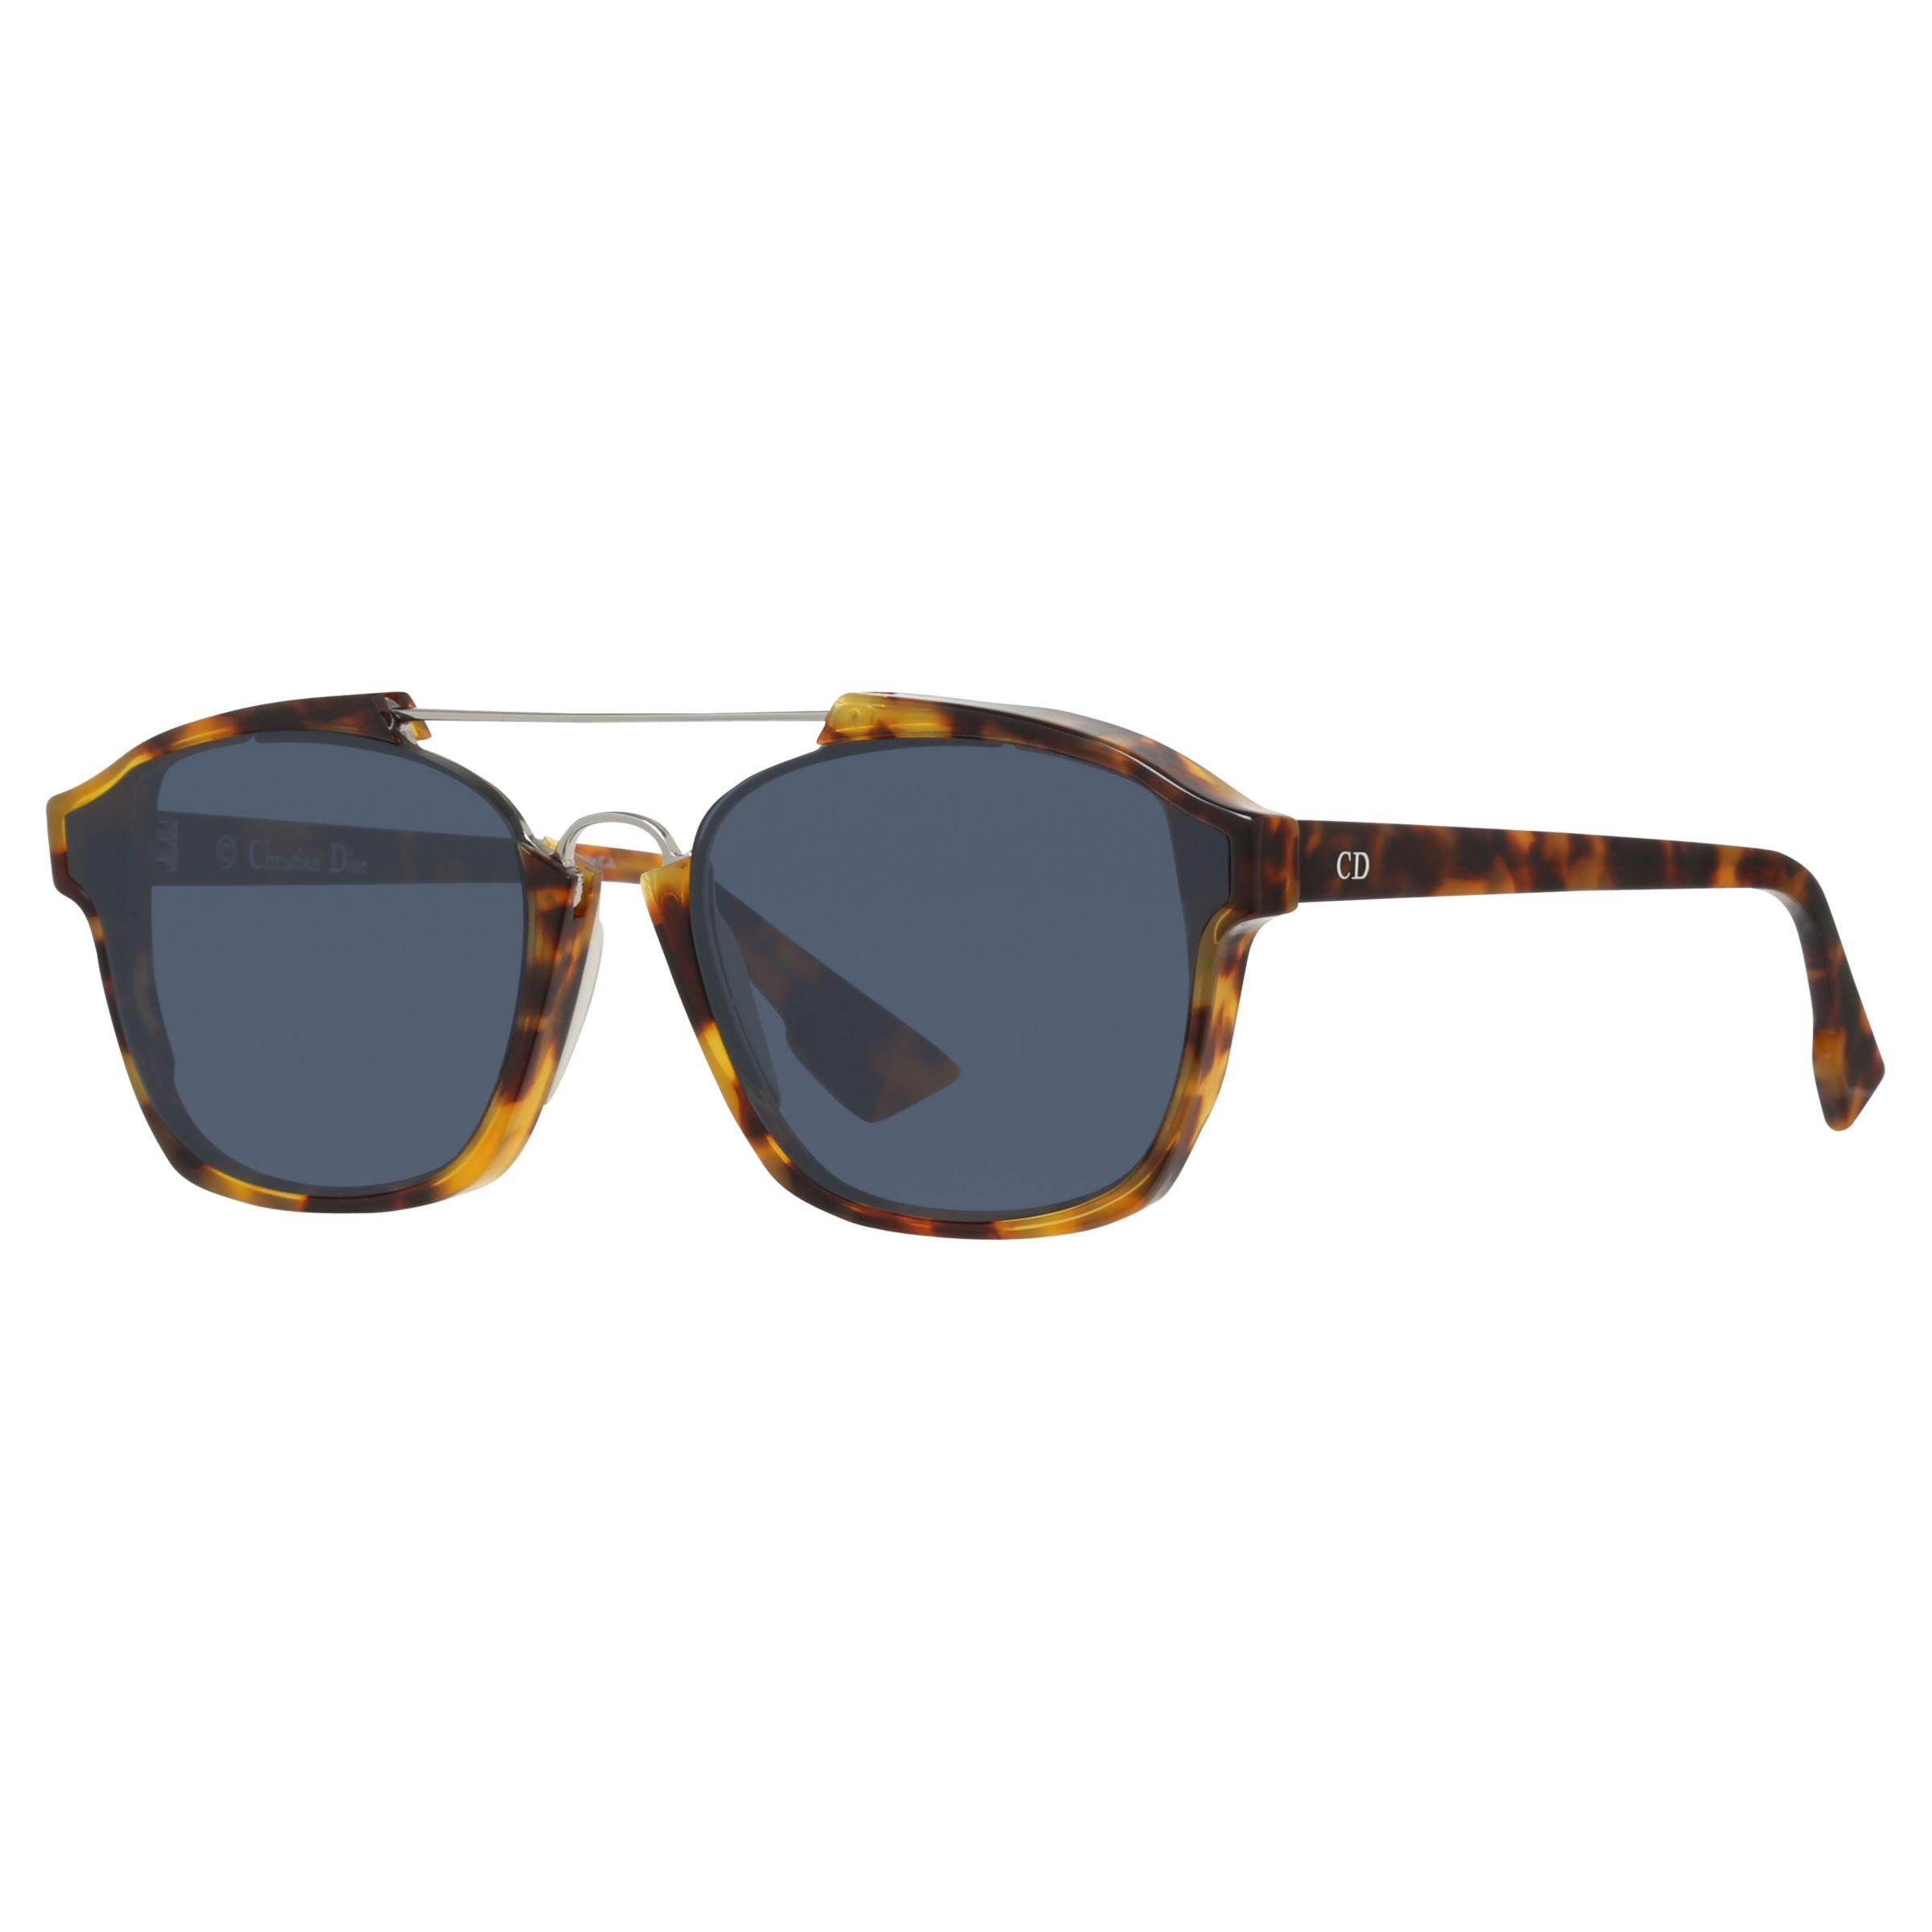 b52d26286d Dior. Blue Women s Abstract Rectangular Sunglasses. £350 From John Lewis  and Partners